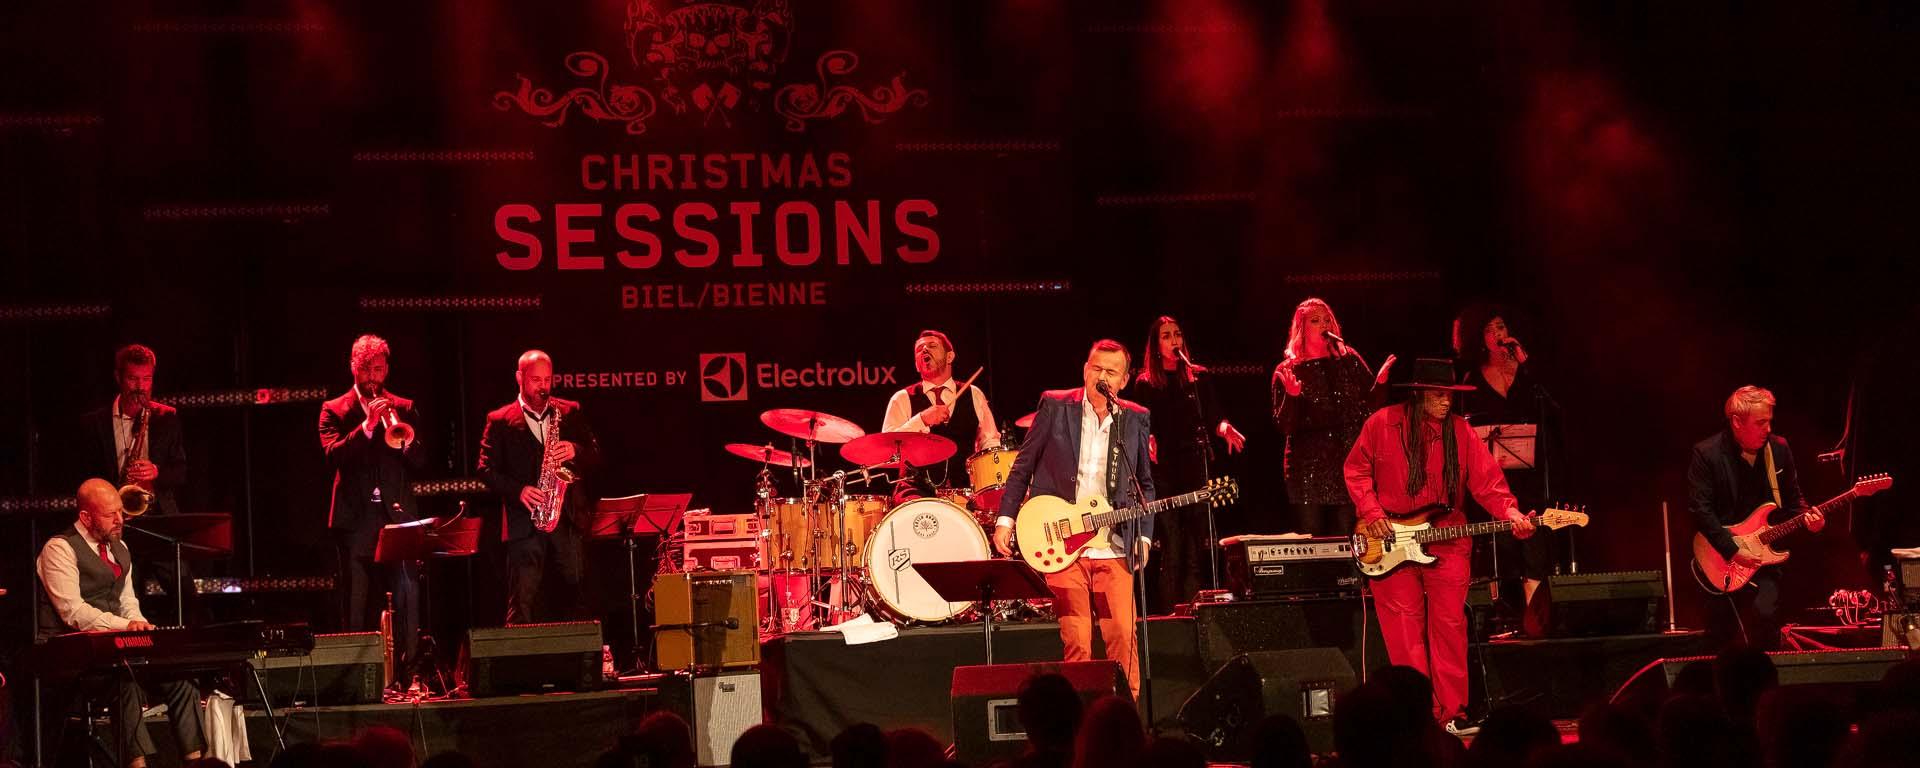 Christmas-Sessions Biel Bienne